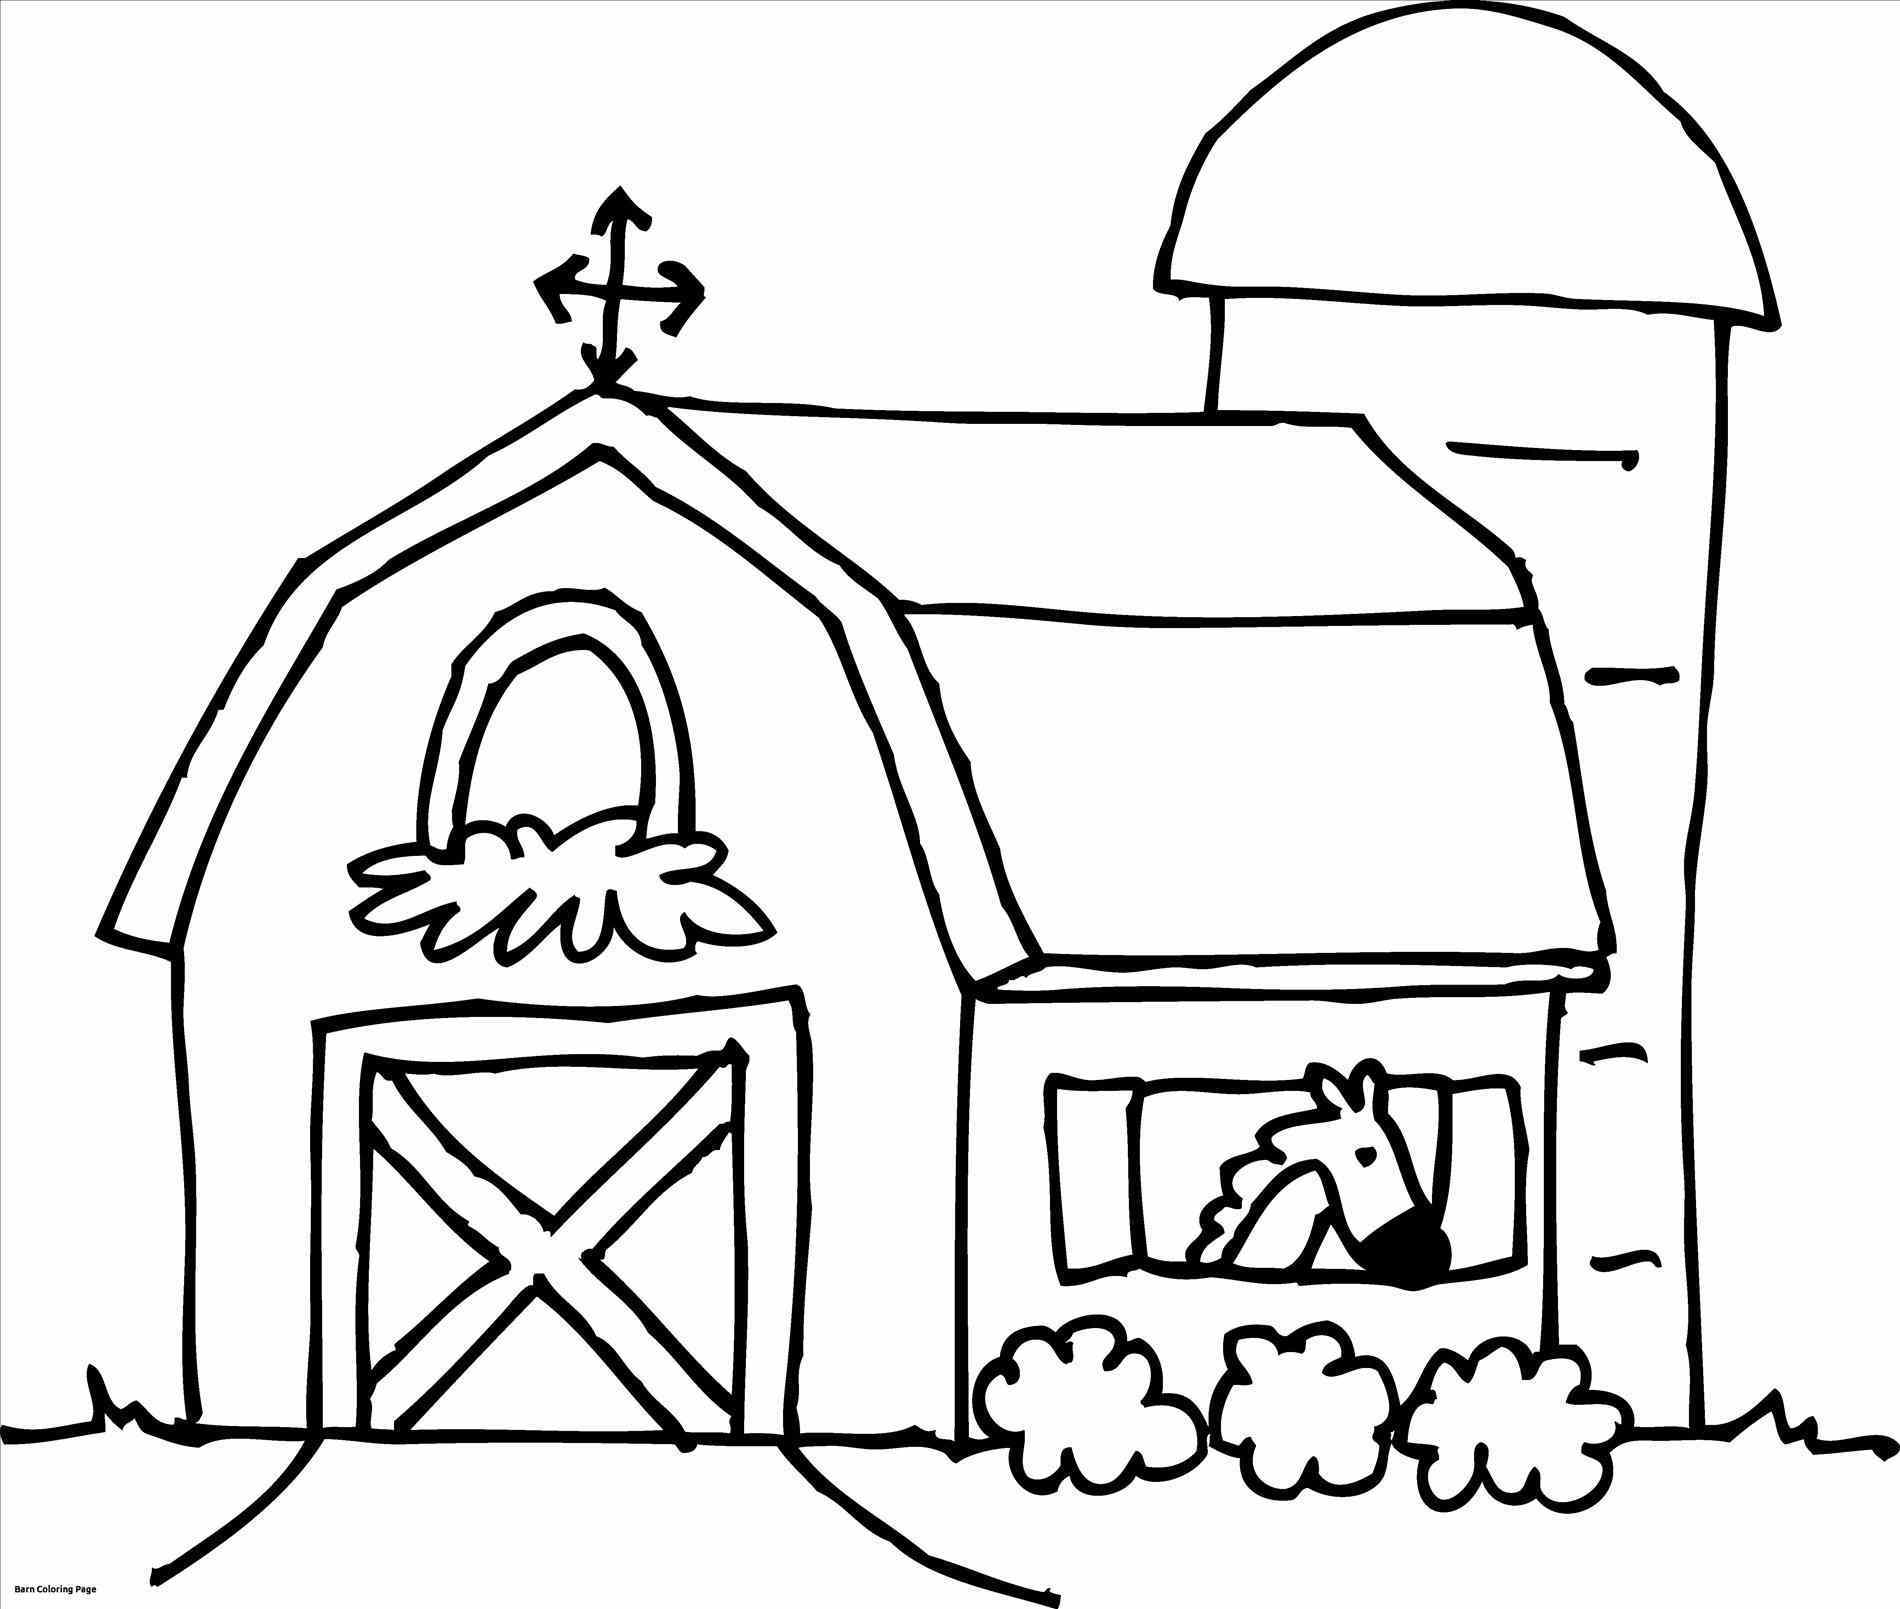 Barn clipart line drawing. At getdrawings com free